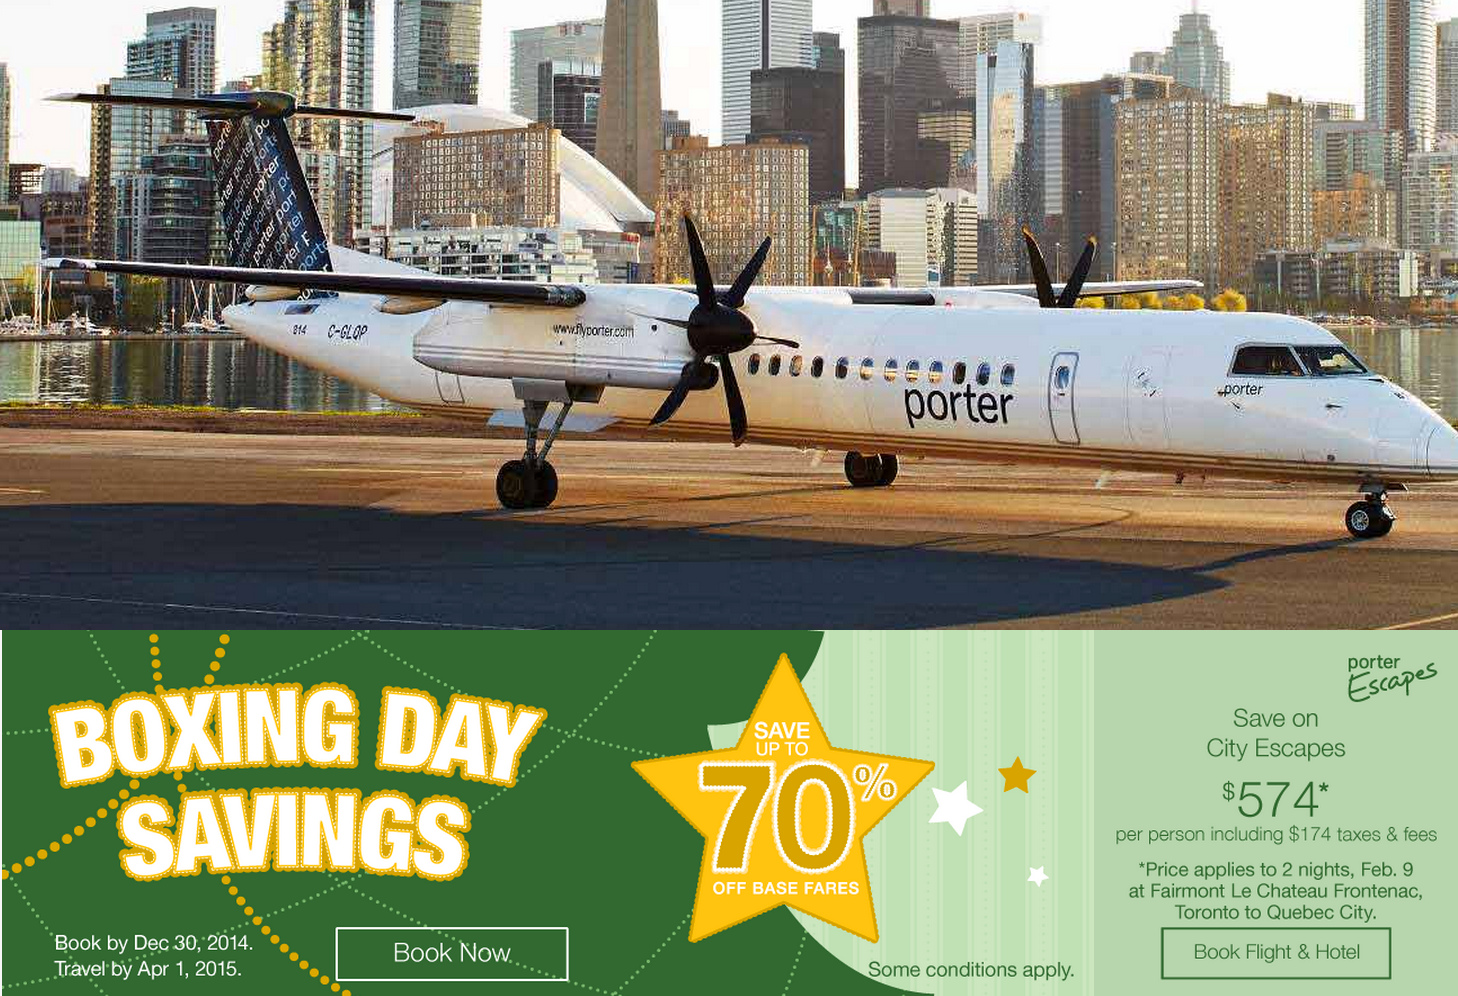 Porter airlines boxing day sale flight tickets up to 70 off canadian freebies coupons - Porter airlines book flights ...